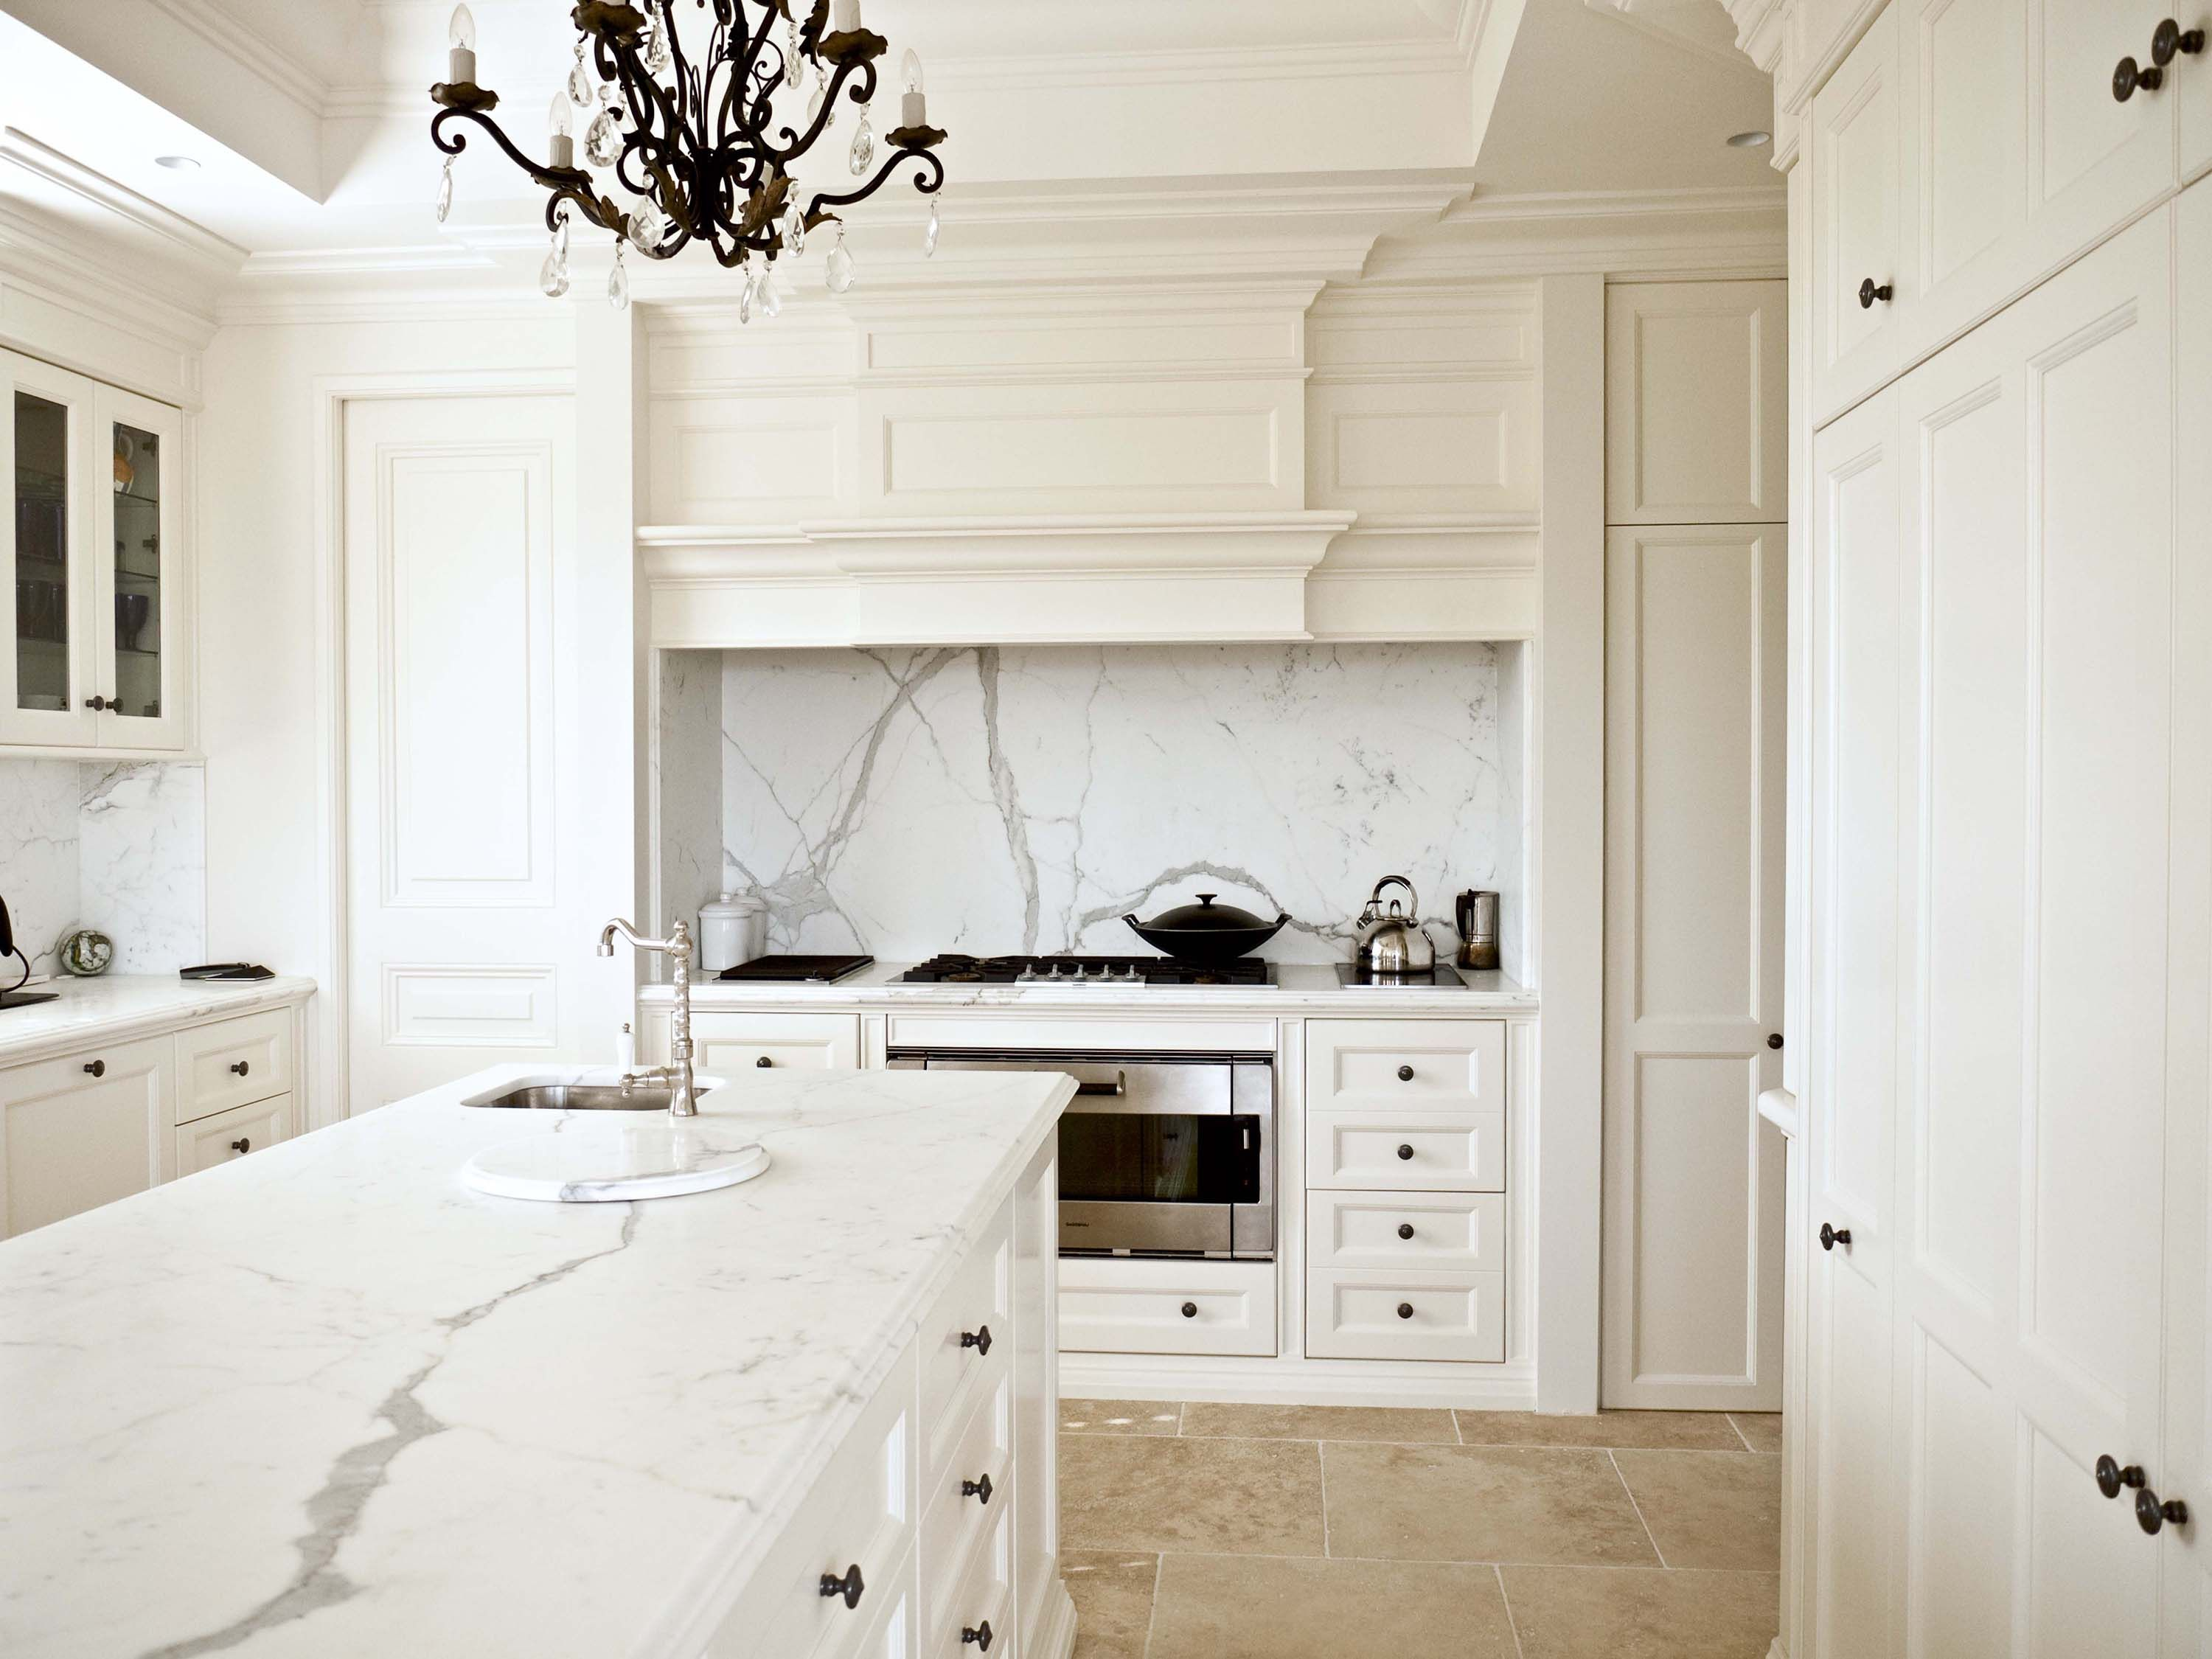 French Parisian style kitchen - French provincial style in Sydney ...